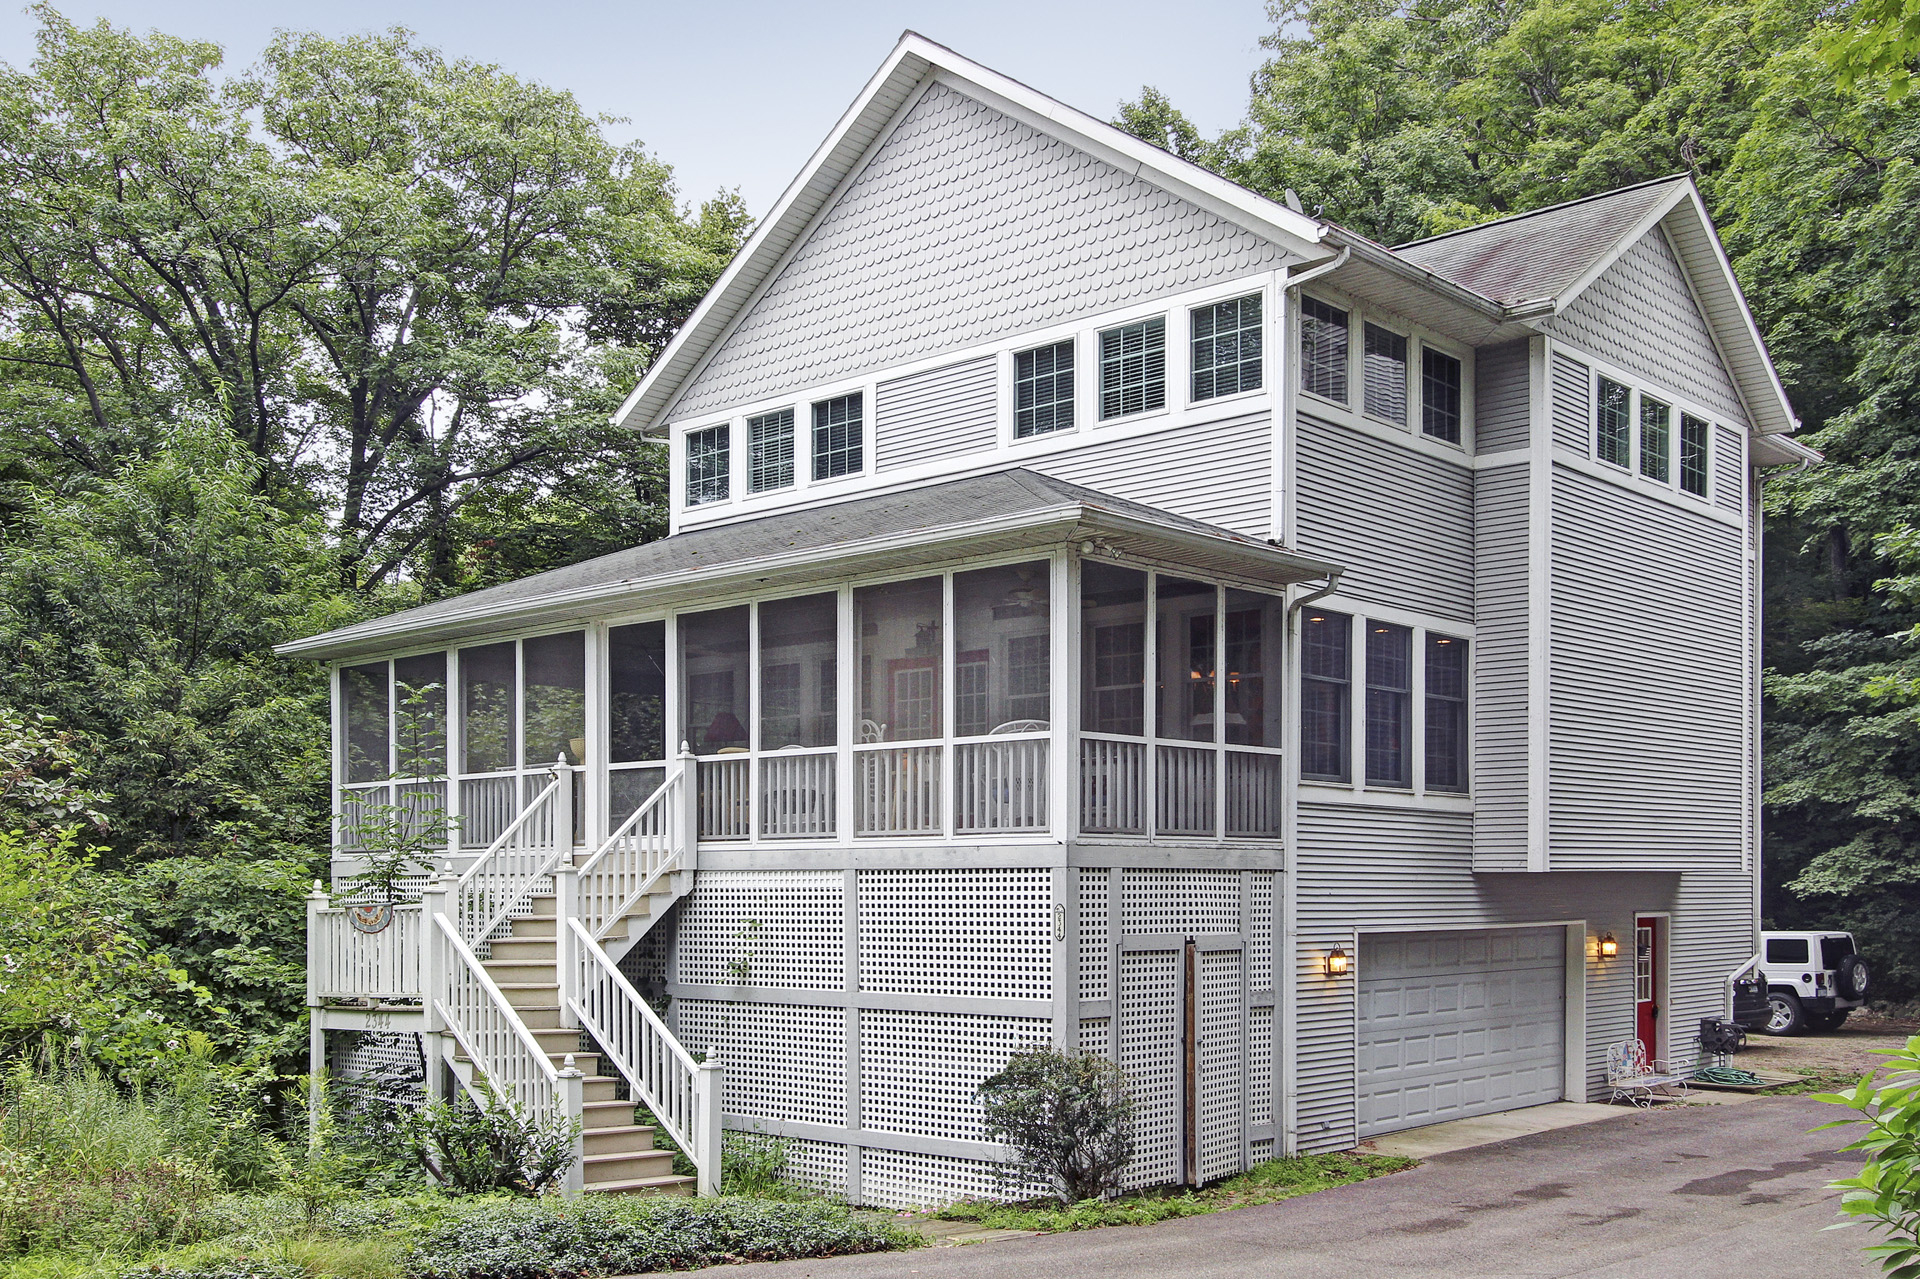 Single Family Home for Sale at Welcoming beach home 2344 Maksaba Trail Macatawa, Michigan, 49434 United States